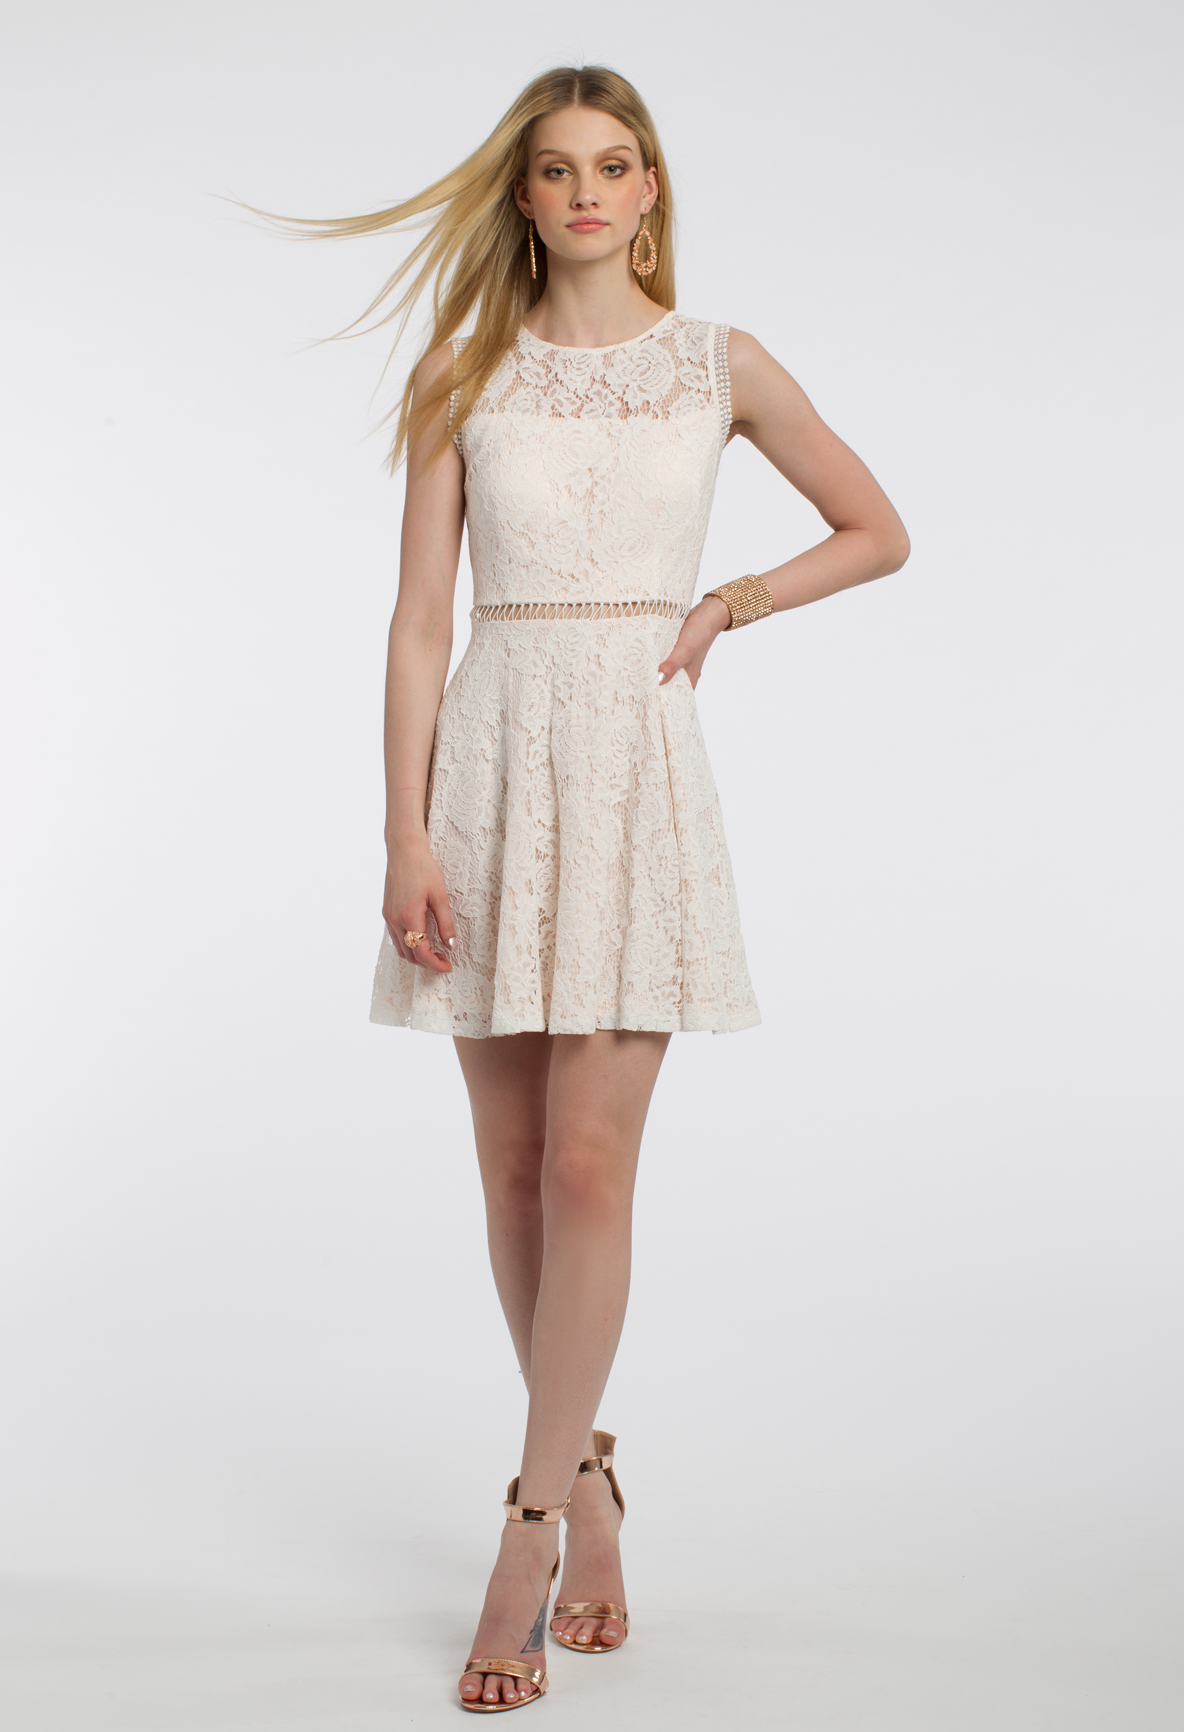 Twotone lace with trim dress lace dressing and illusions